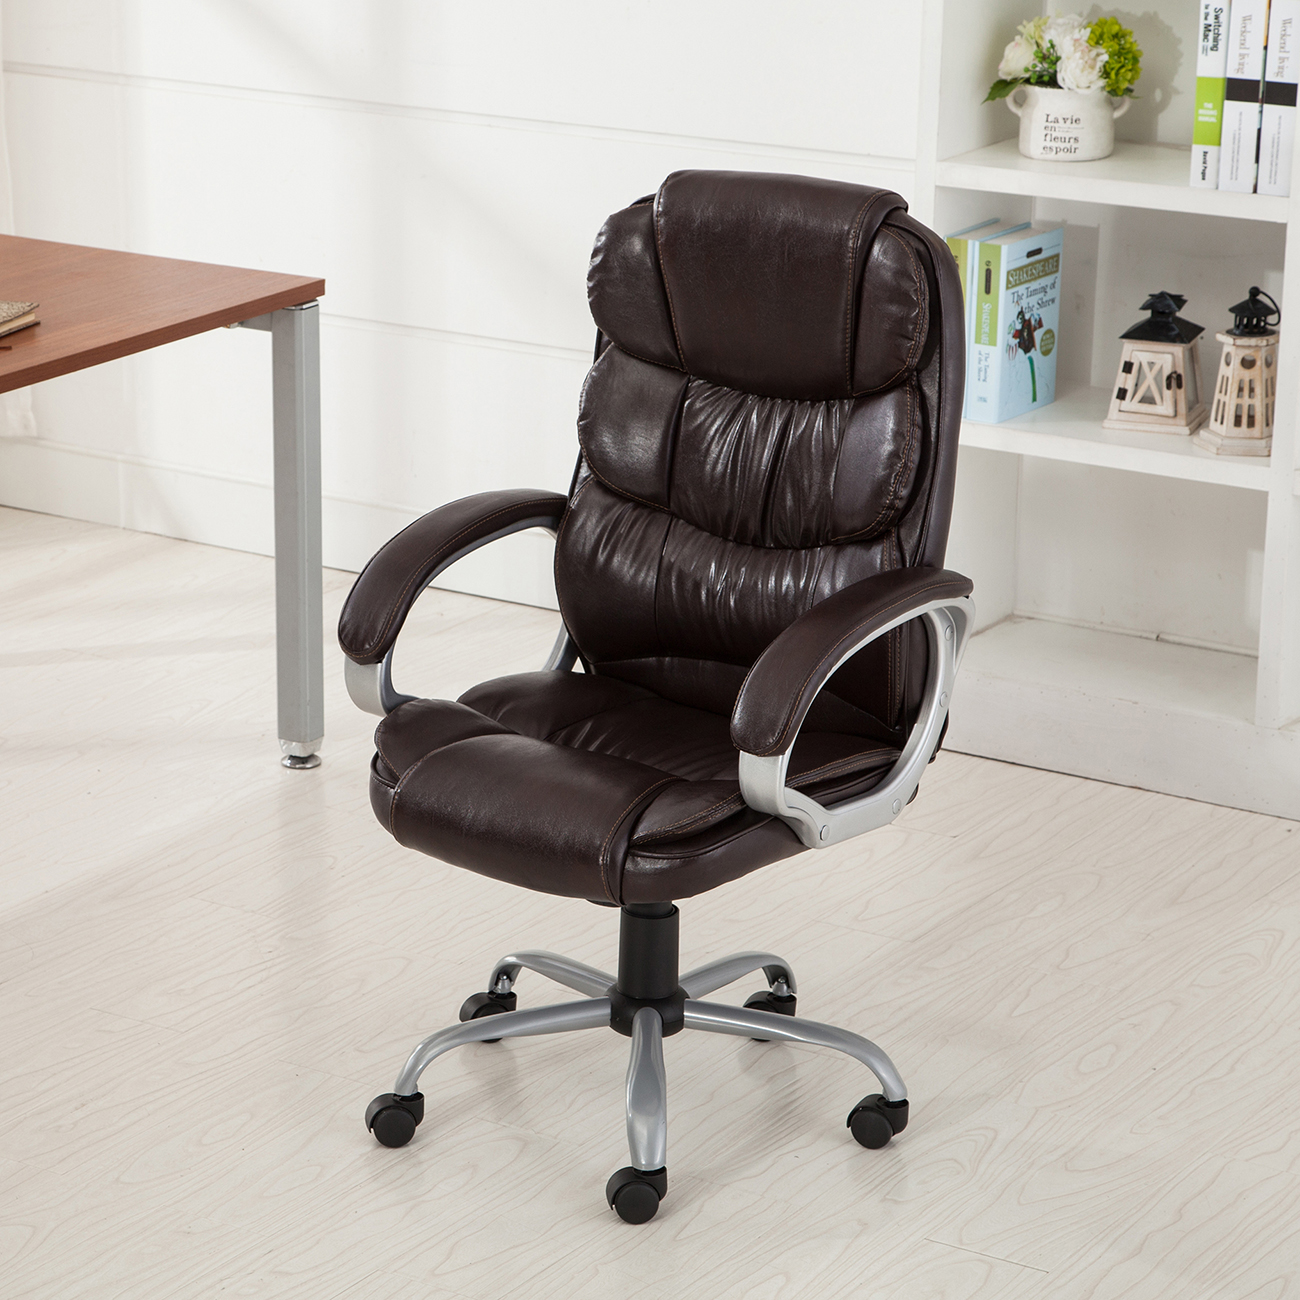 Rolling Desk Chairs Pu Leather Office Rolling Computer Chair Black Mocha High